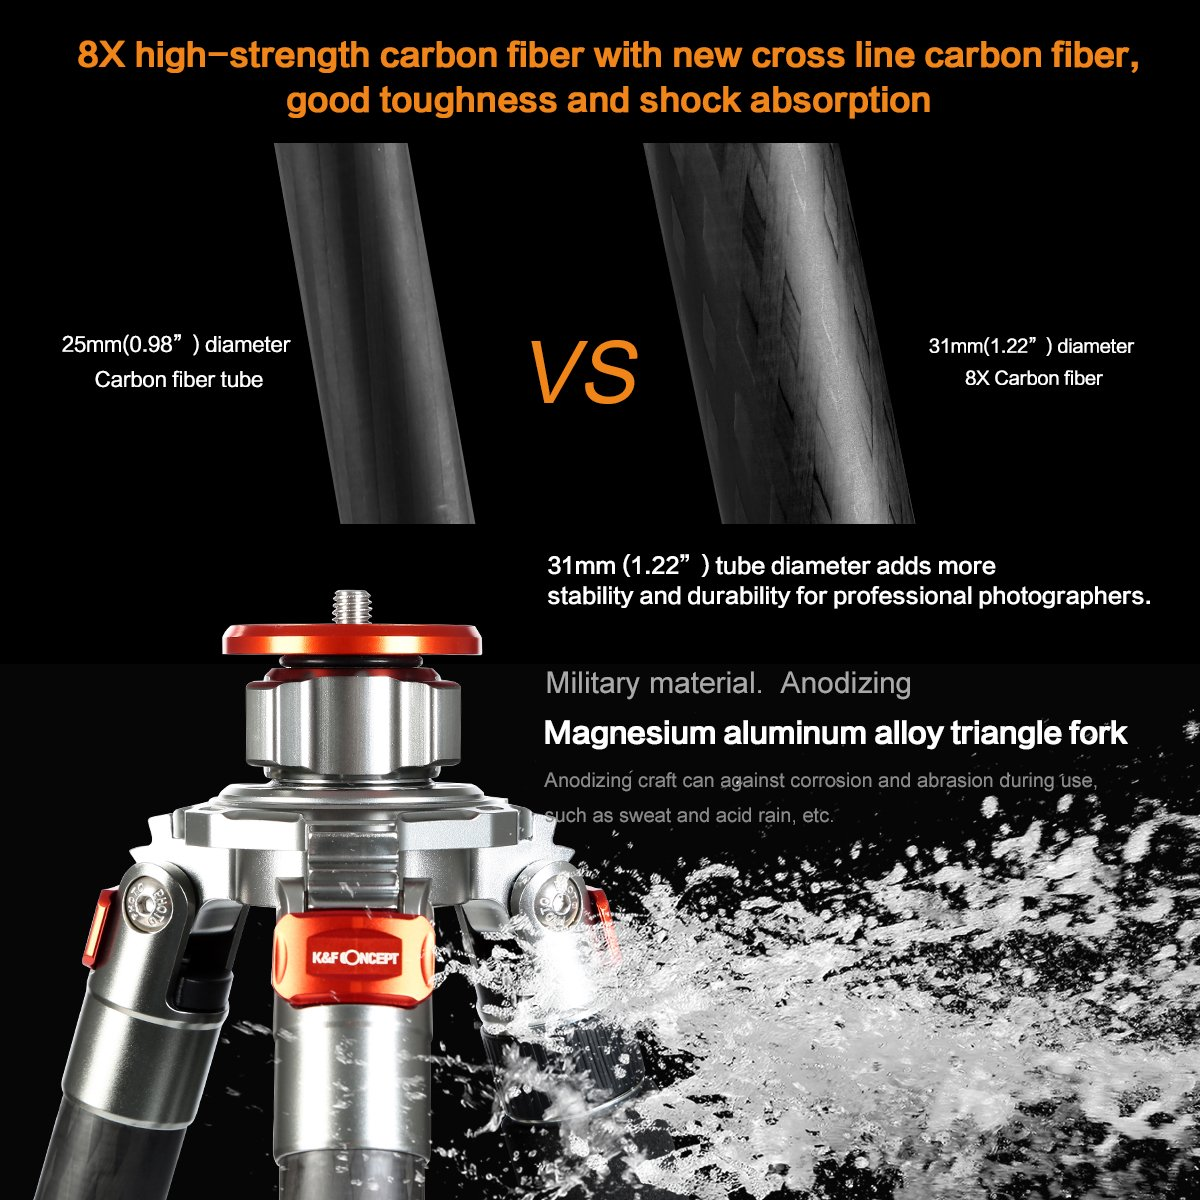 K&f Concept Carbon Fiber Camera Tripod 4 Section 61 Inch with Load Capacity 26.46lbs Monopod for Camera DSLR DV Canon Nikon Sony by K&F Concept (Image #6)